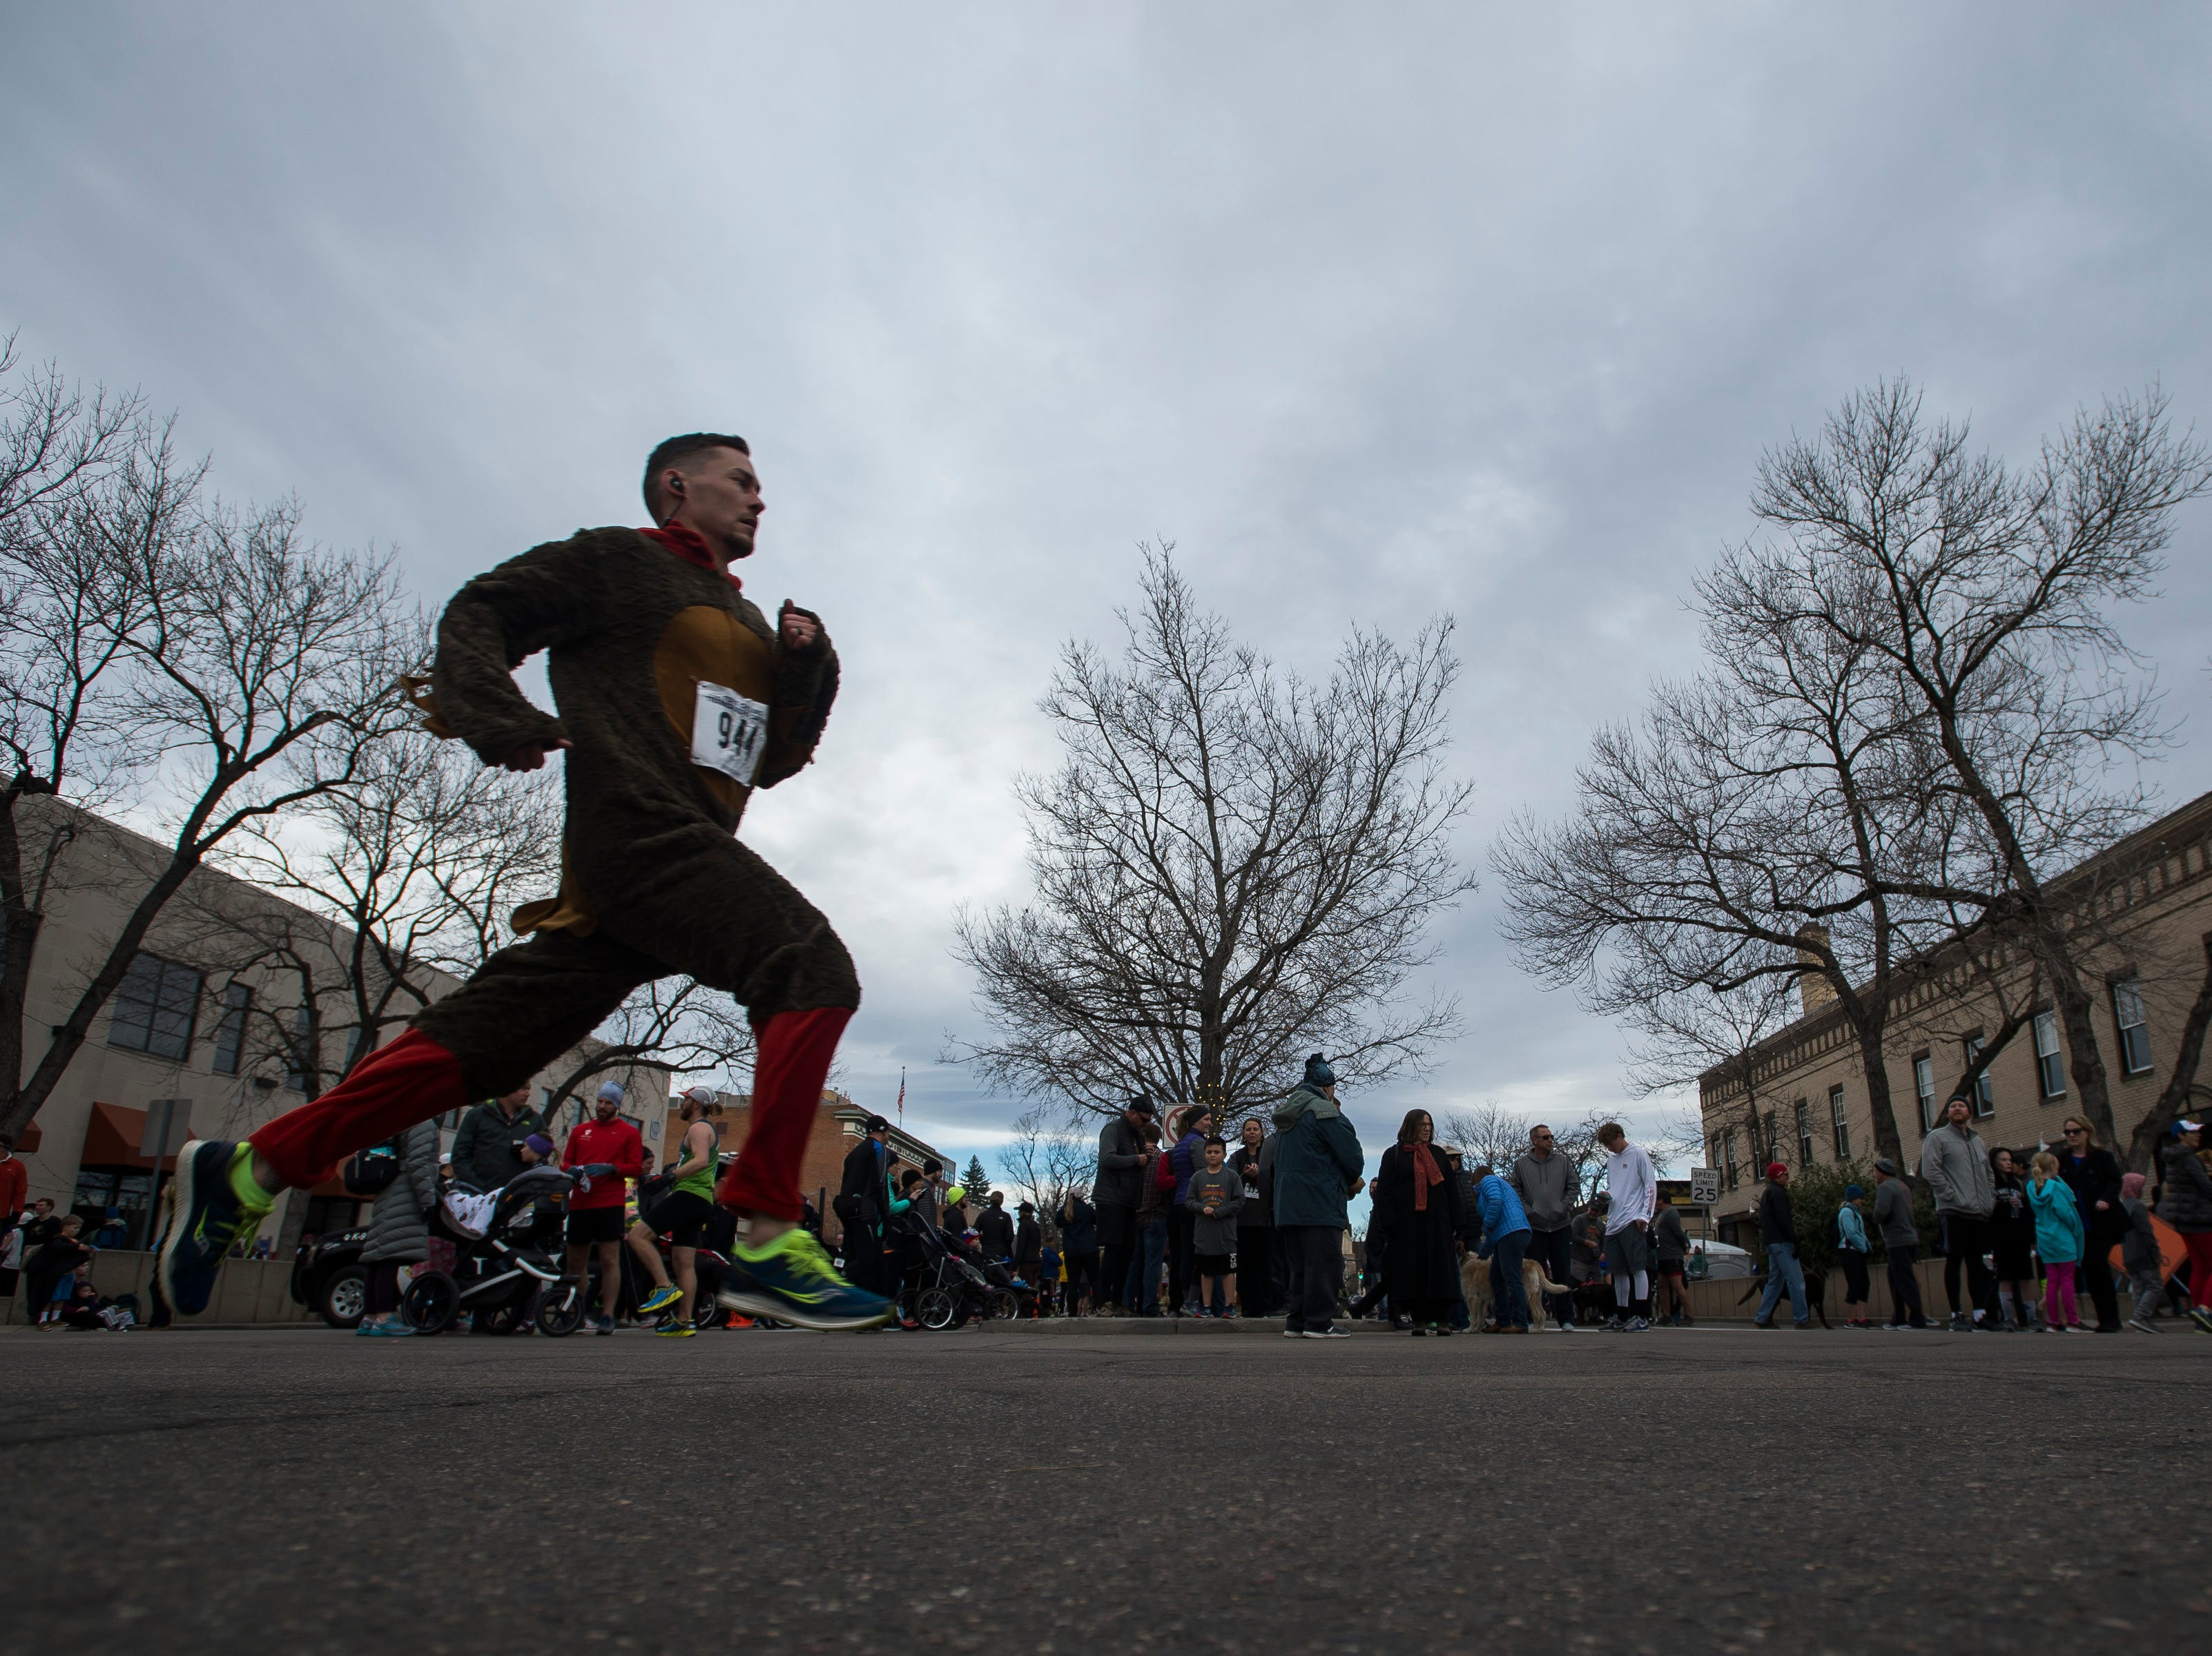 A runner dresses in a festive turkey outfit warms up before the Fort Collins Thanksgiving Day Run on Thursday, Nov. 22, 2018, in Old Town Fort Collins, Colo.